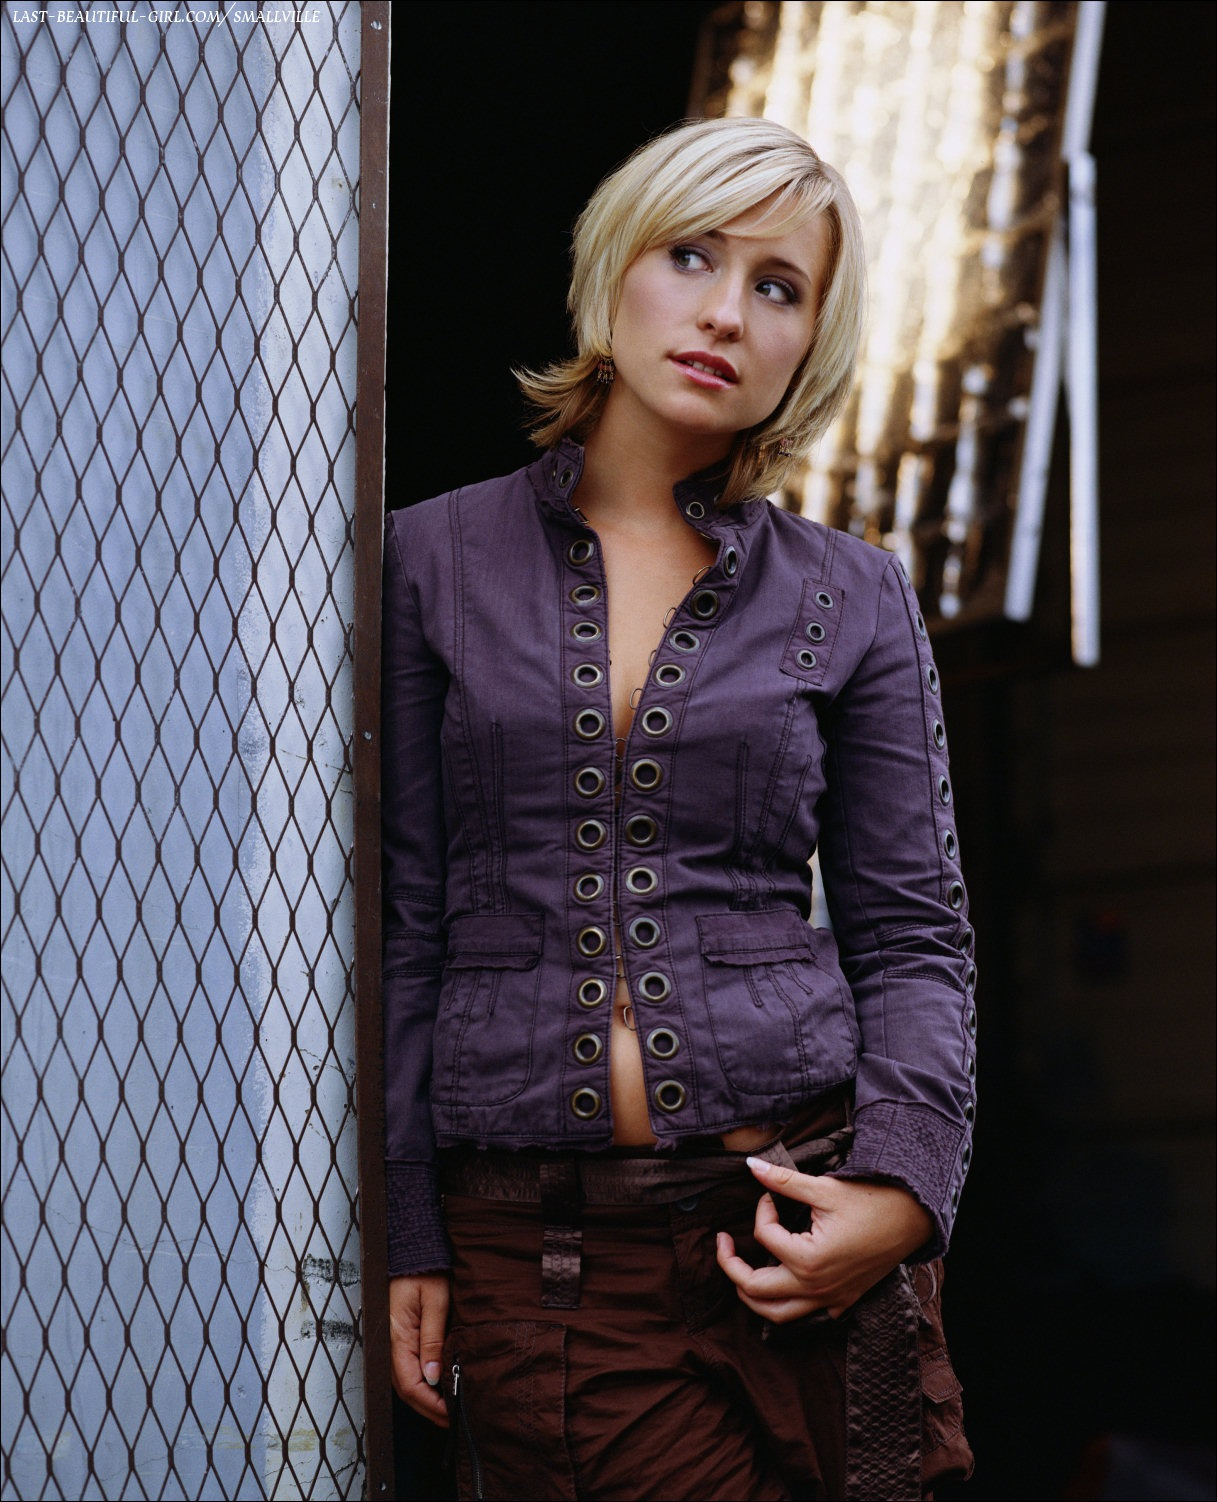 Allison Mack wallpapers 29481 Best Allison Mack pictures 1217x1502